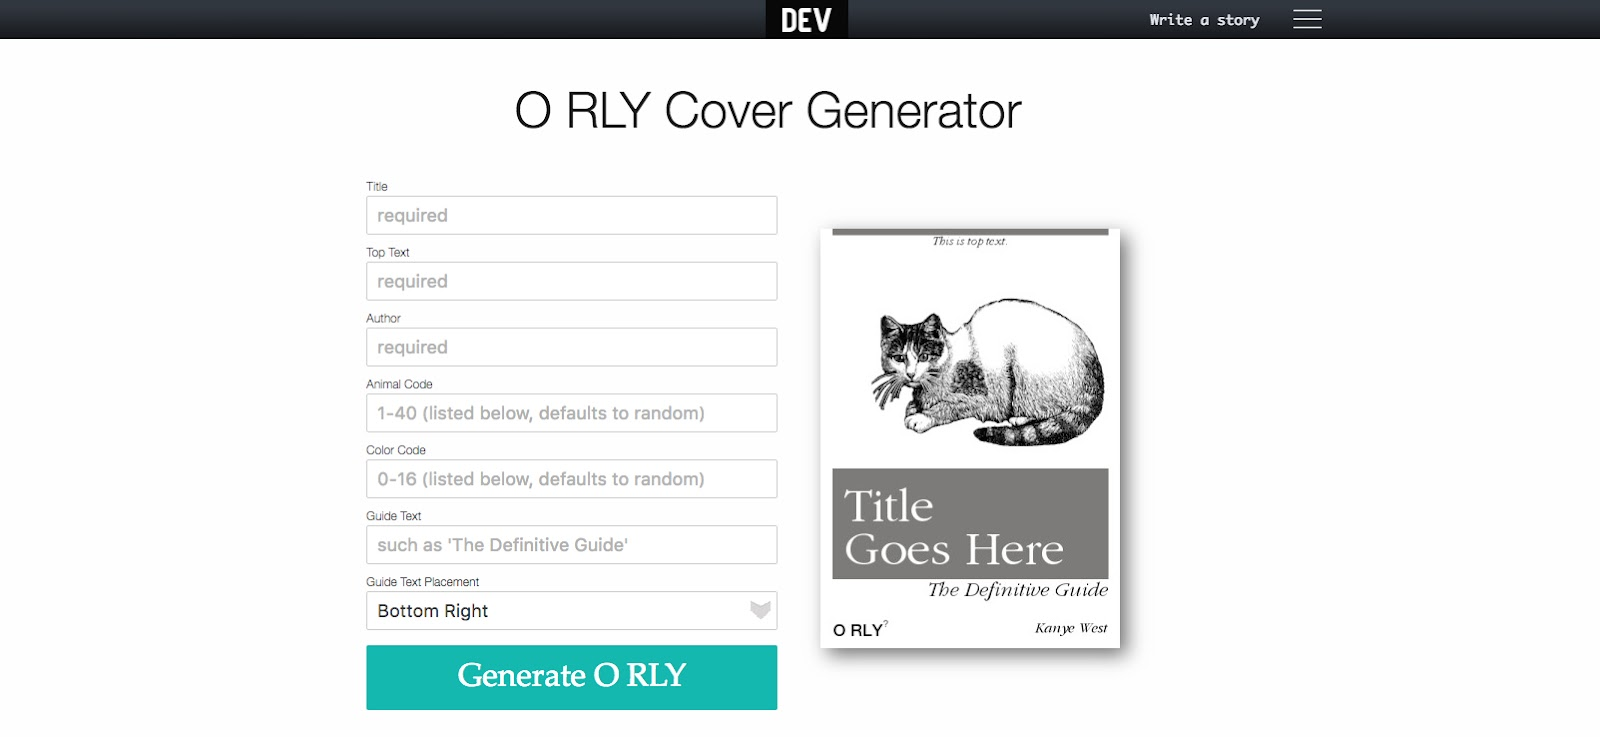 O RLY Cover Generator homepage